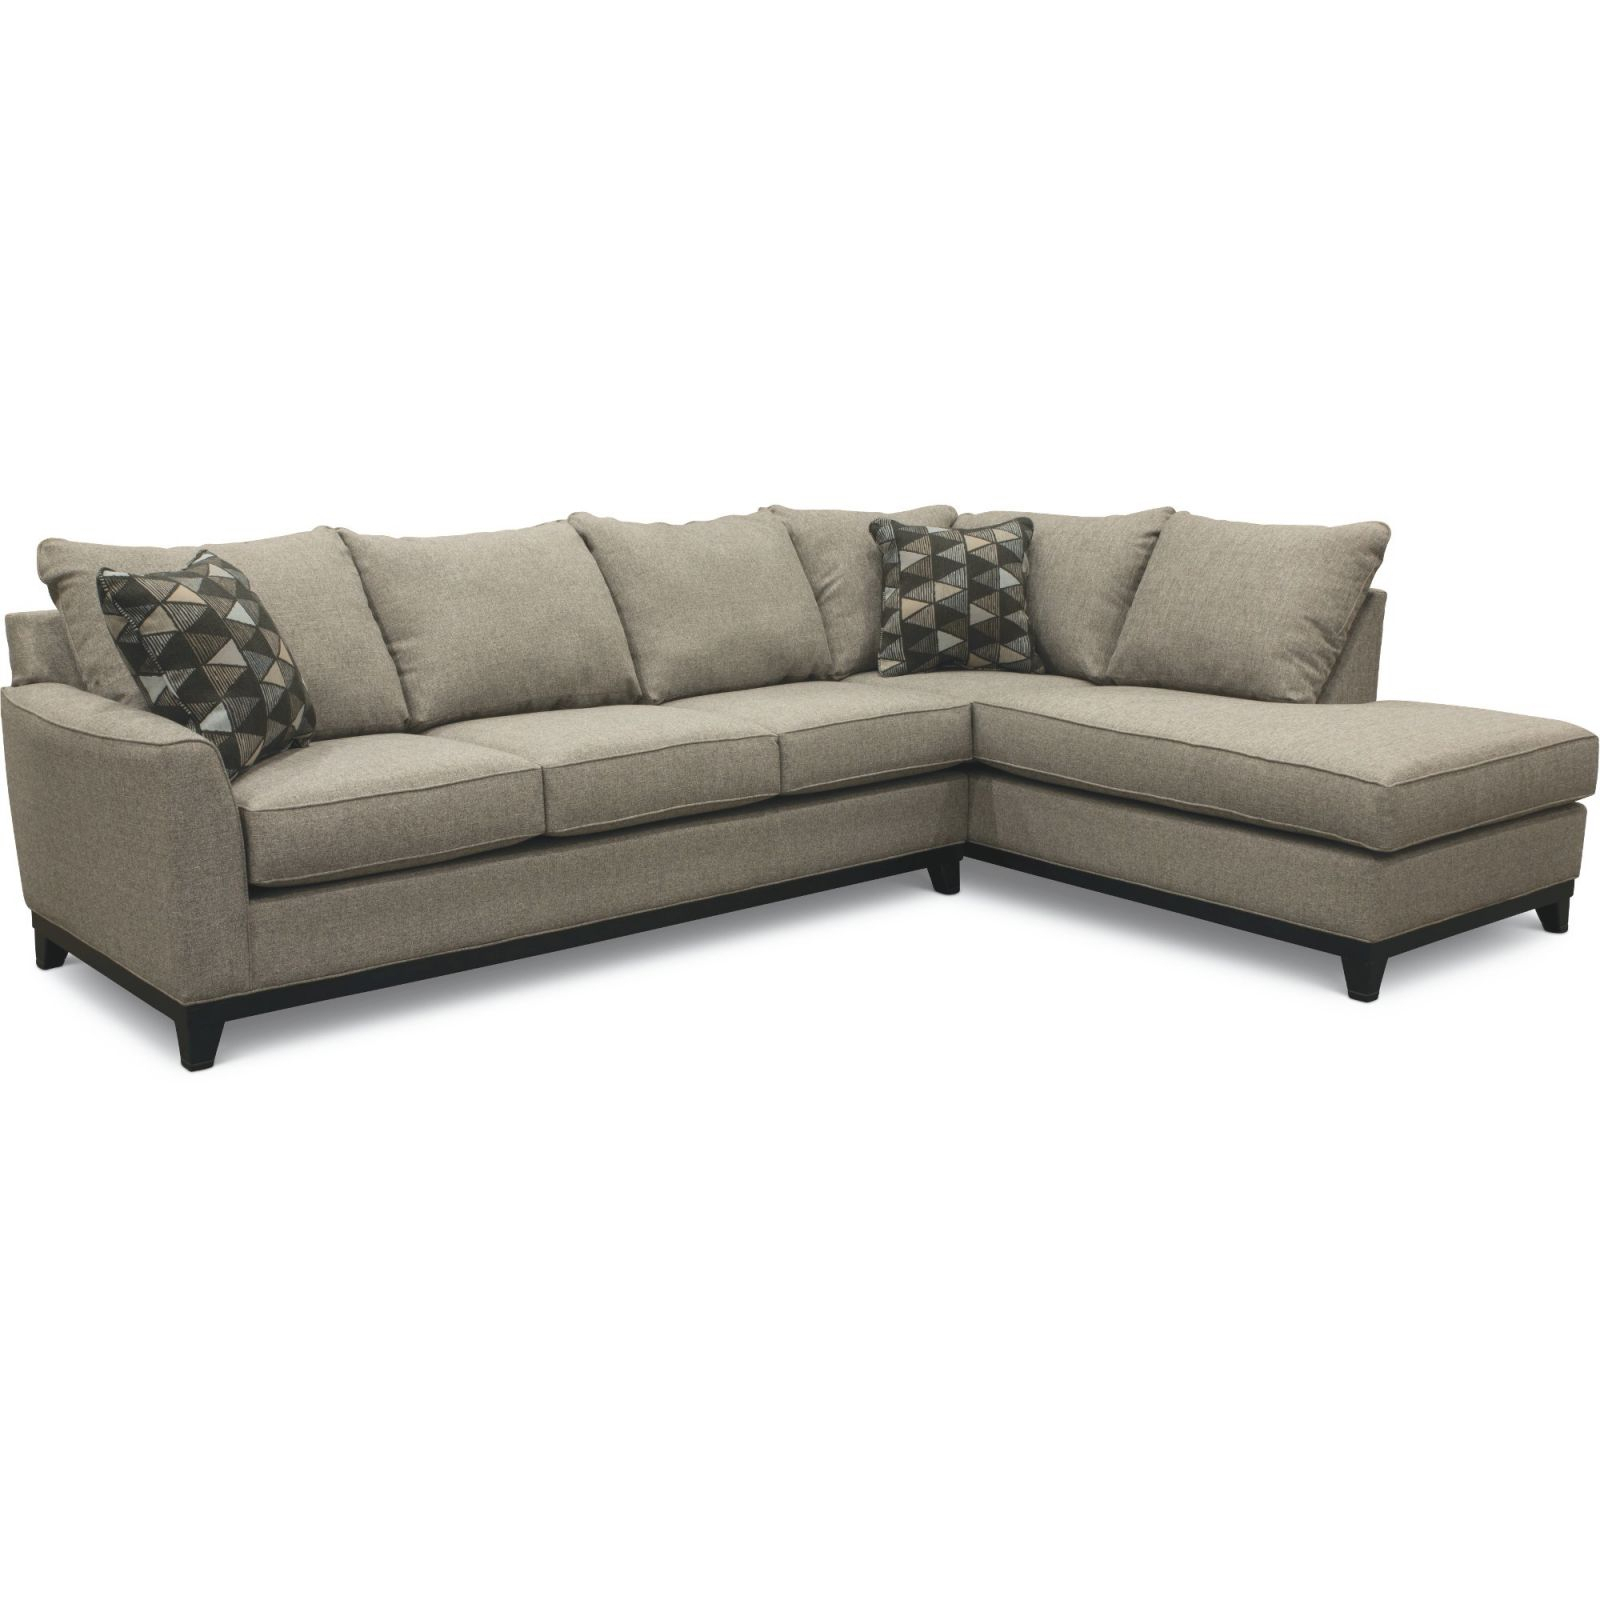 Slate Gray 2 Piece Sectional Sofa With Raf Chaise In Avery 2 Piece Sectionals With Raf Armless Chaise (View 13 of 15)